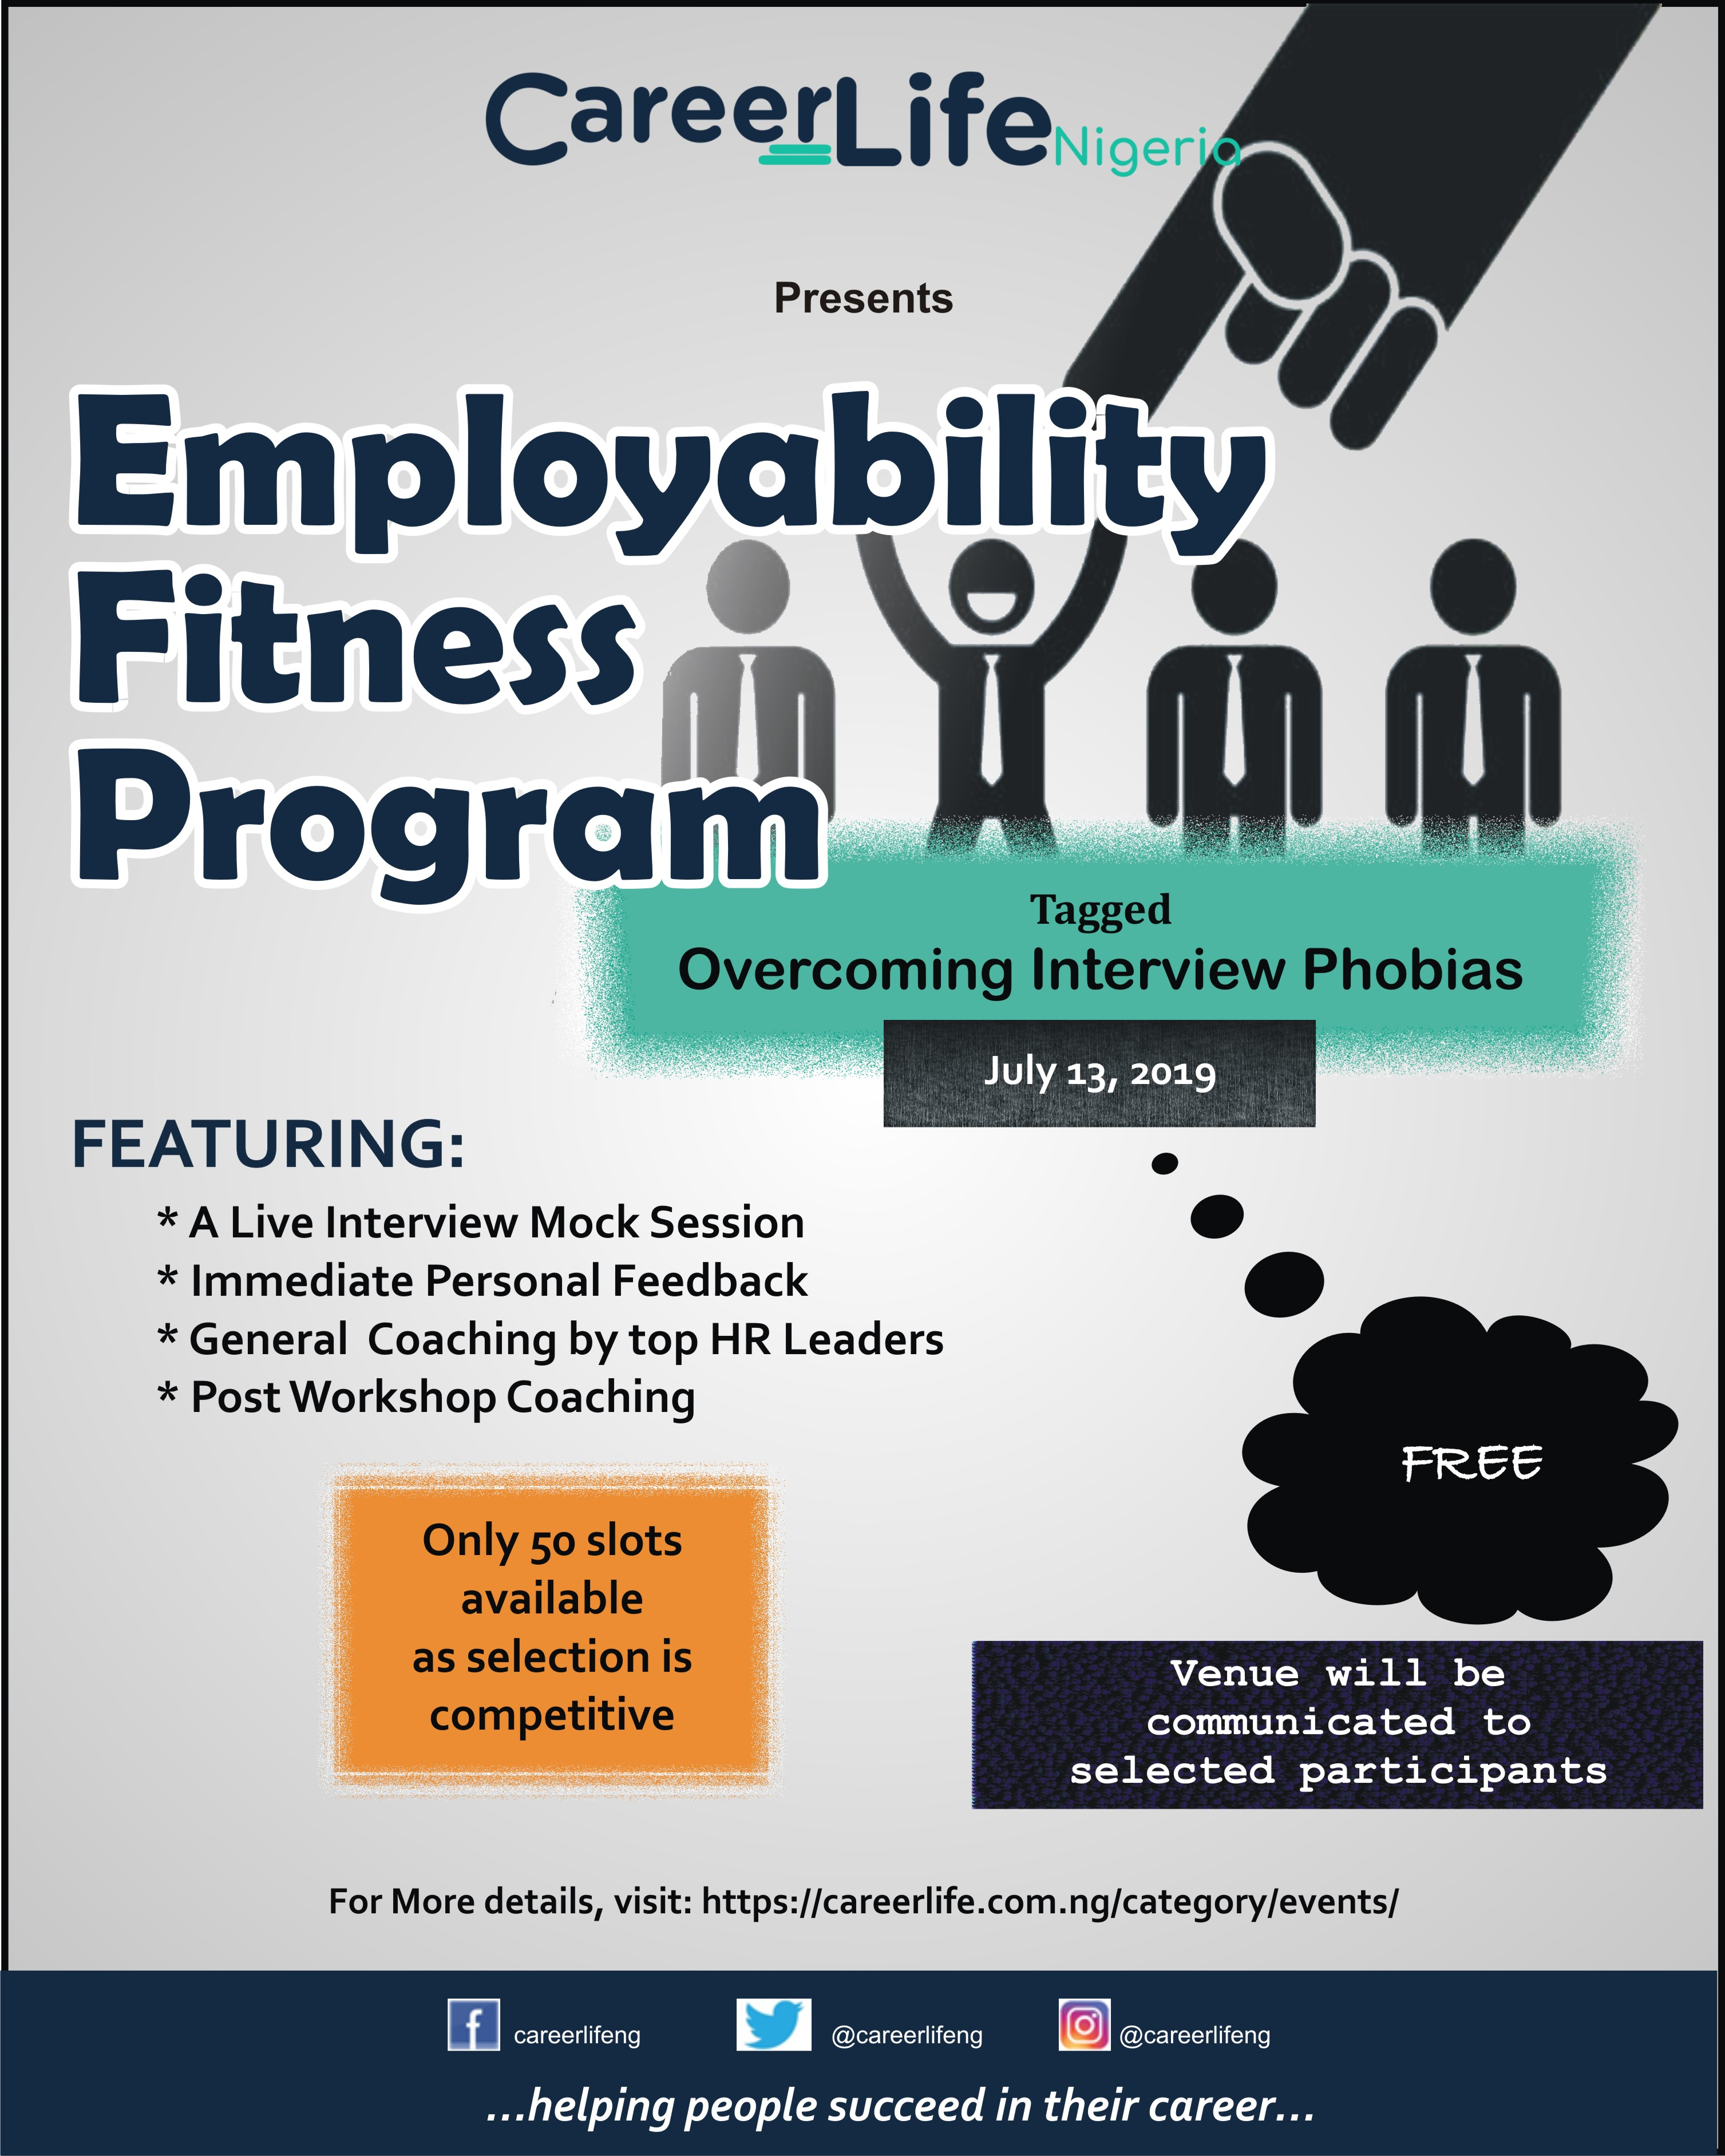 CareerLife Nigeria launches Employability Fitness Program(EFP) for young graduates